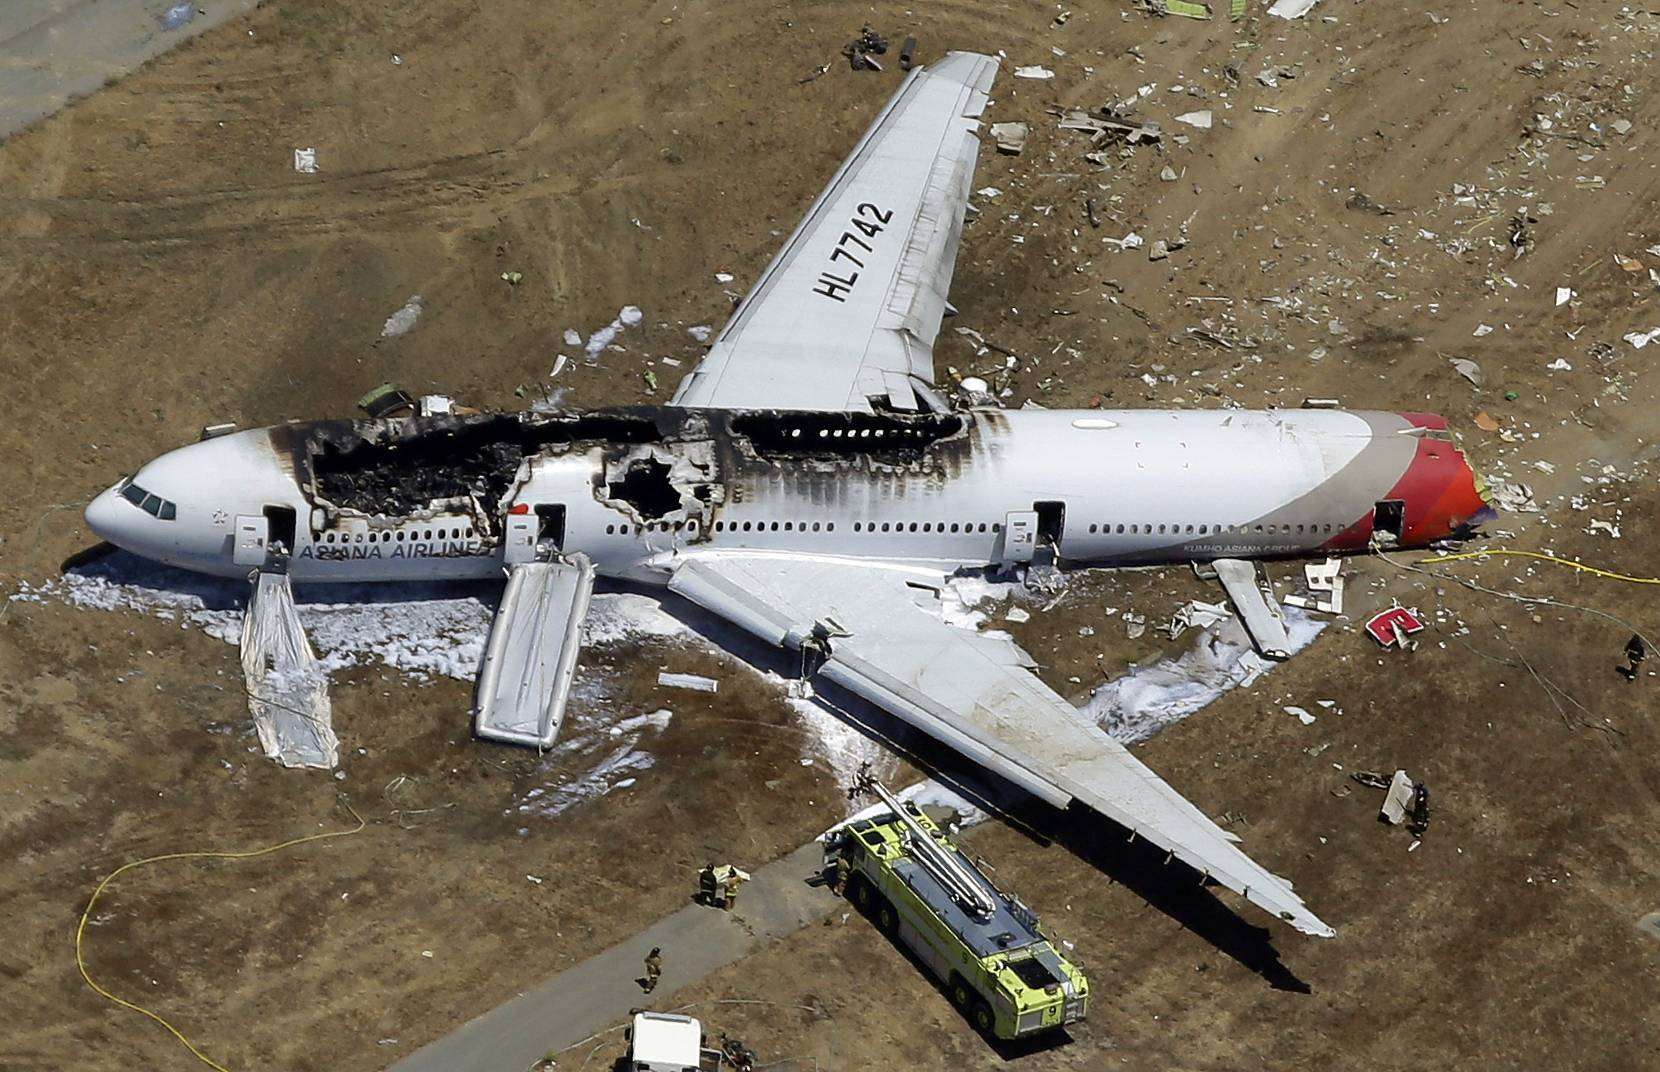 Nearly a year after Asiana Flight 214 crashed while landing in San Francisco, the National Transportation Safety Board is meeting to determine what went wrong, who's to blame and how to prevent future accidents.